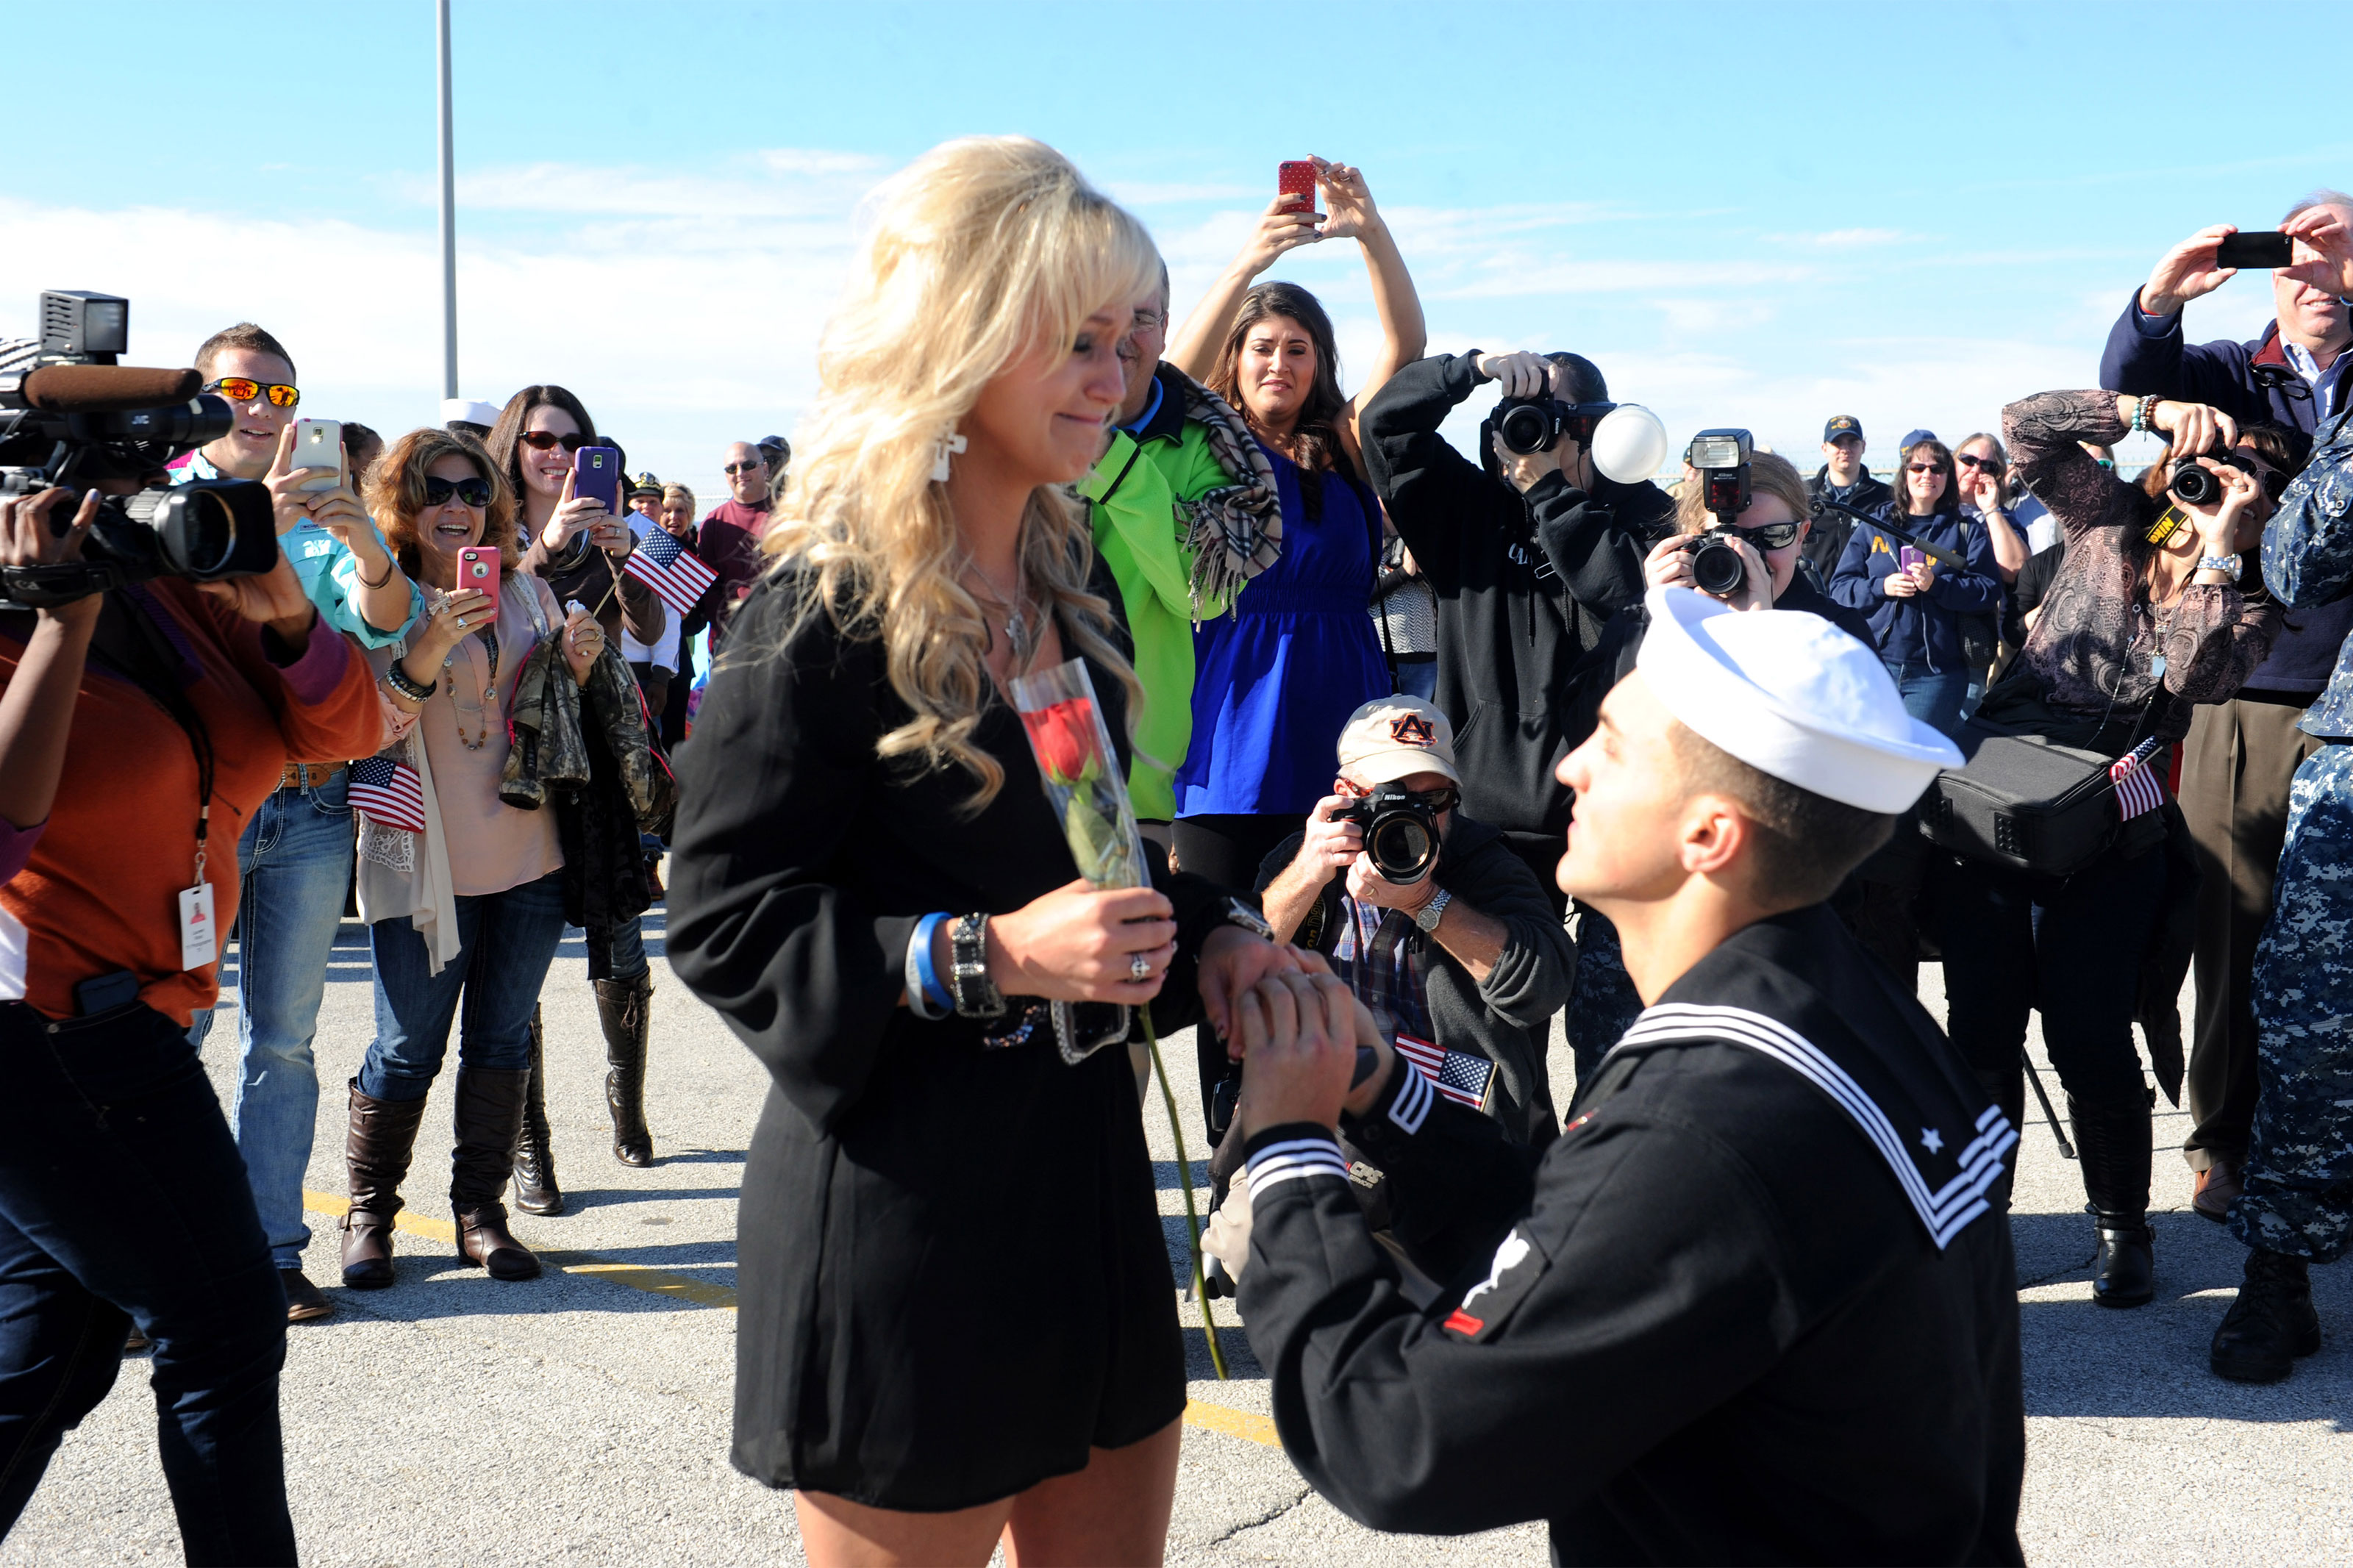 Hot Wife Challenge Tumblr how to be a navy wife with a happy life | military